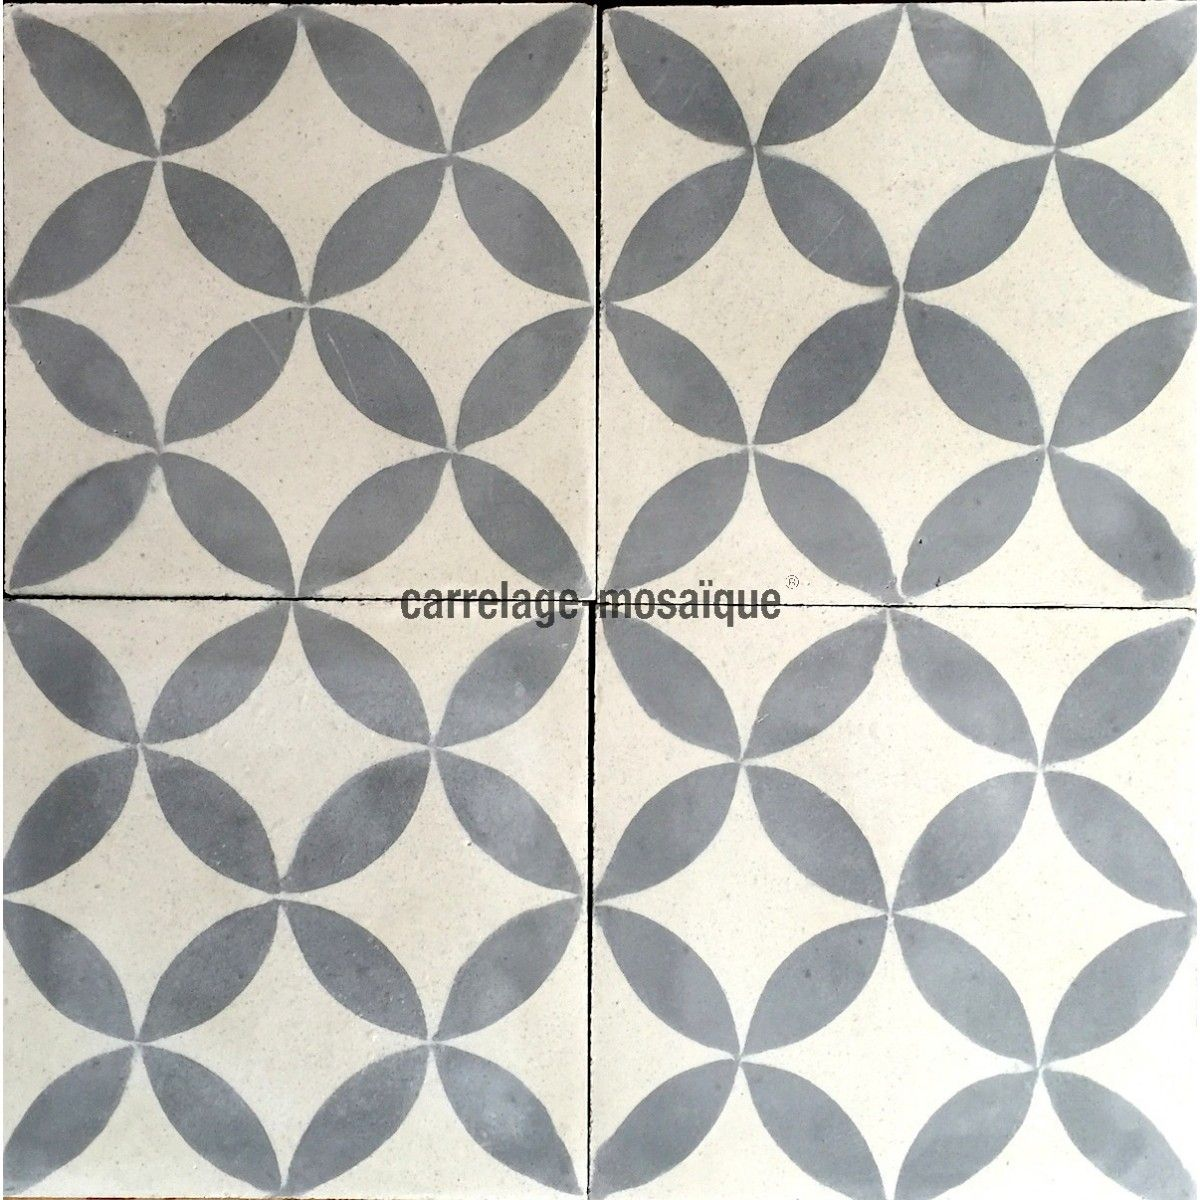 Carrelage ciment pas cher 1m2 modele sampa gris for Carrelage sol garage pas cher